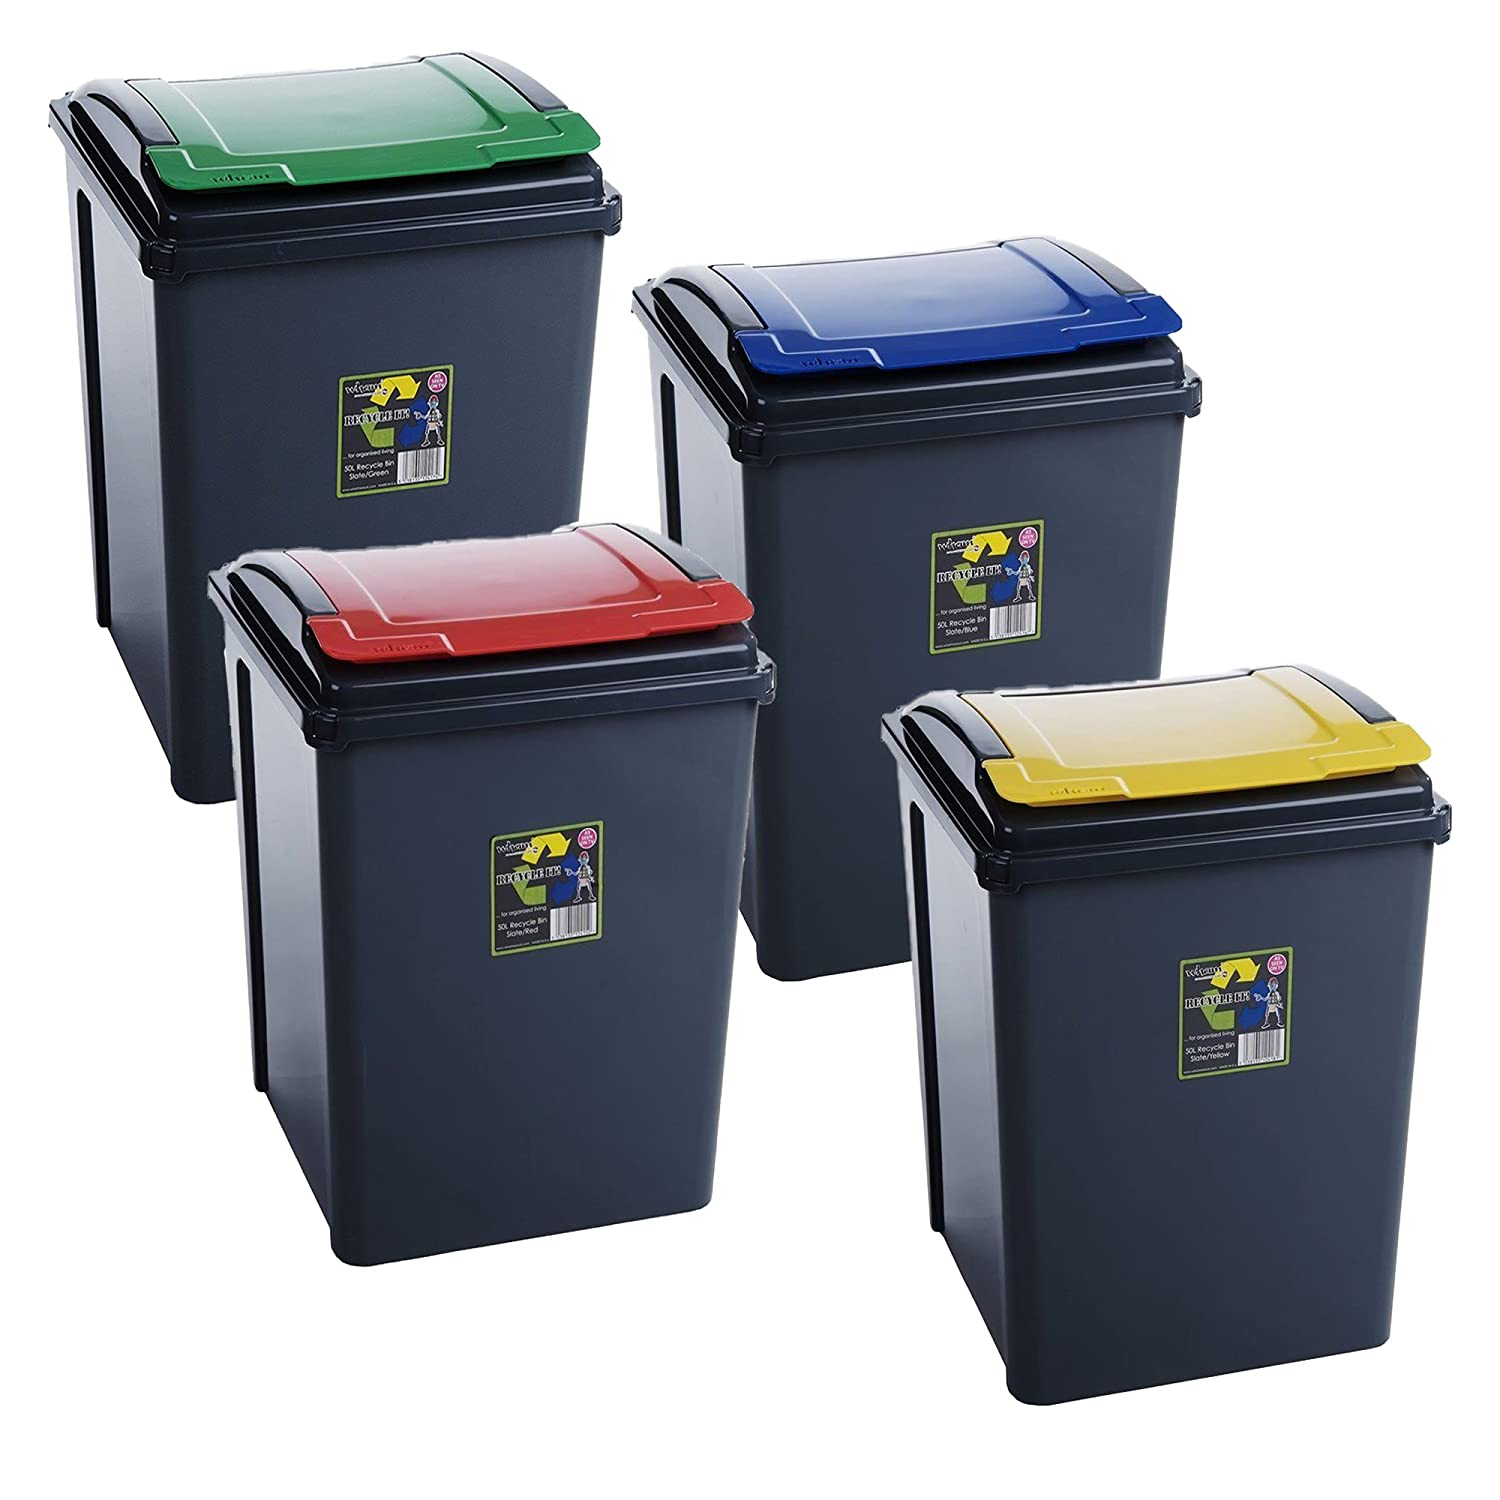 Blue 25 Litre Plastic Waste Bin High Quality with Flap Lid by Wham Home In Style 5038135124112